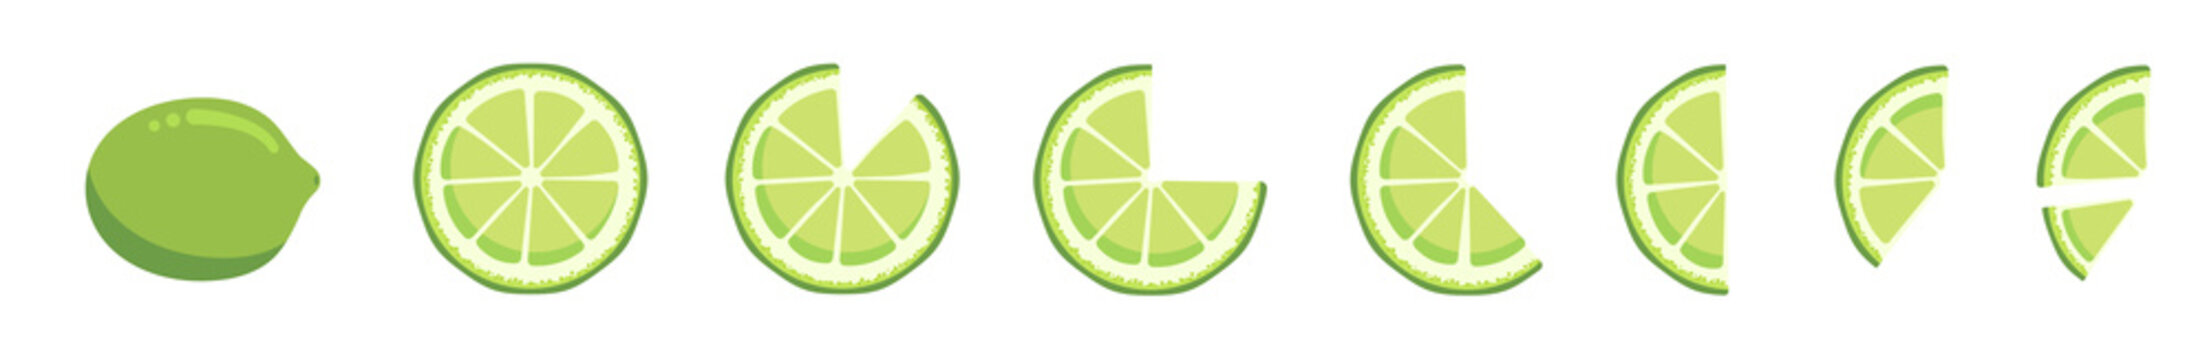 Vitamin C. Set of vector isolated elements. Bright fresh ripe juicy whole and cut lime and slices isolated on white background. Clip art for your design